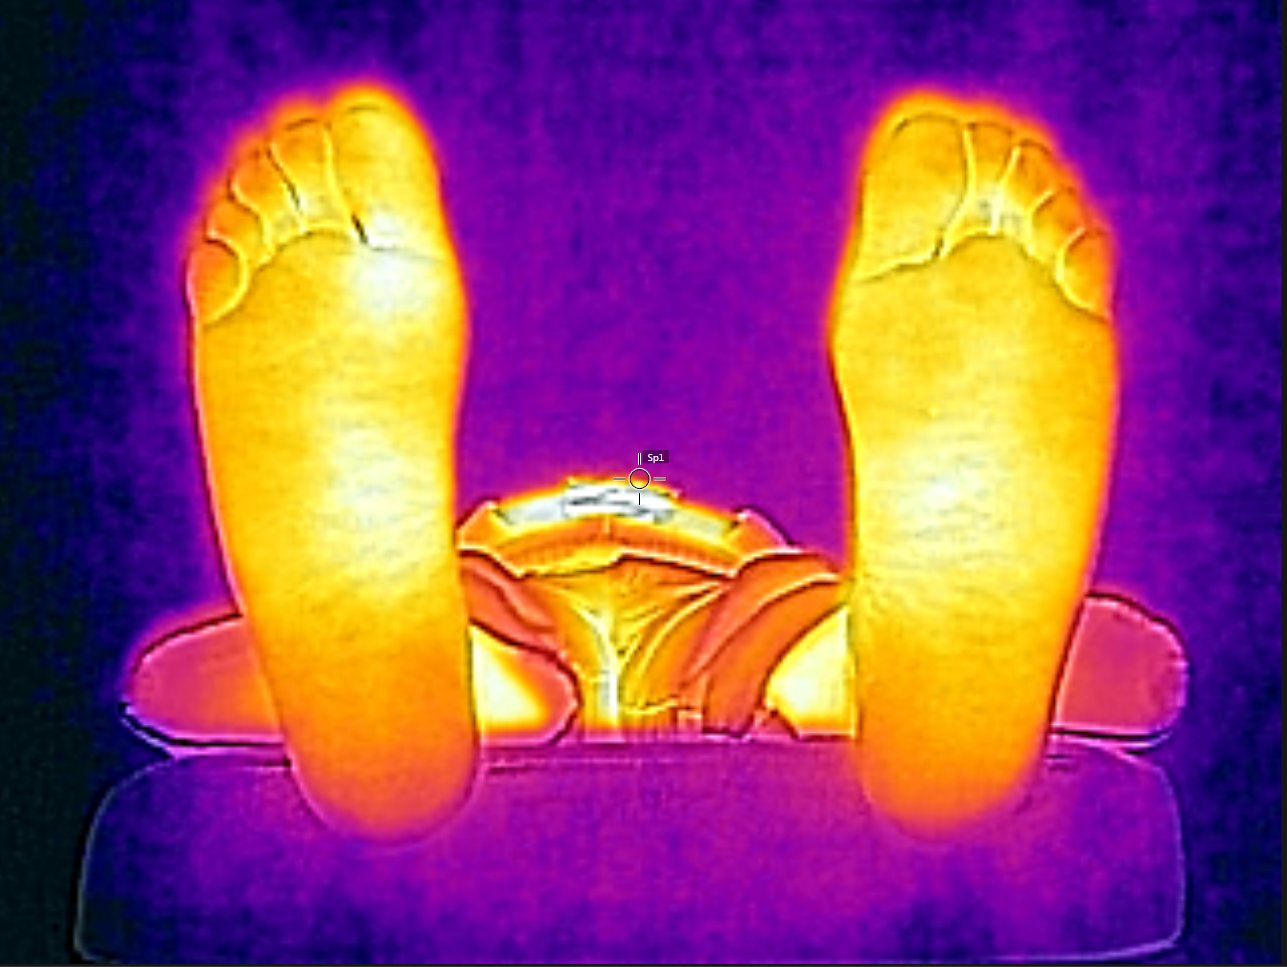 Feet thermal picture example 1.